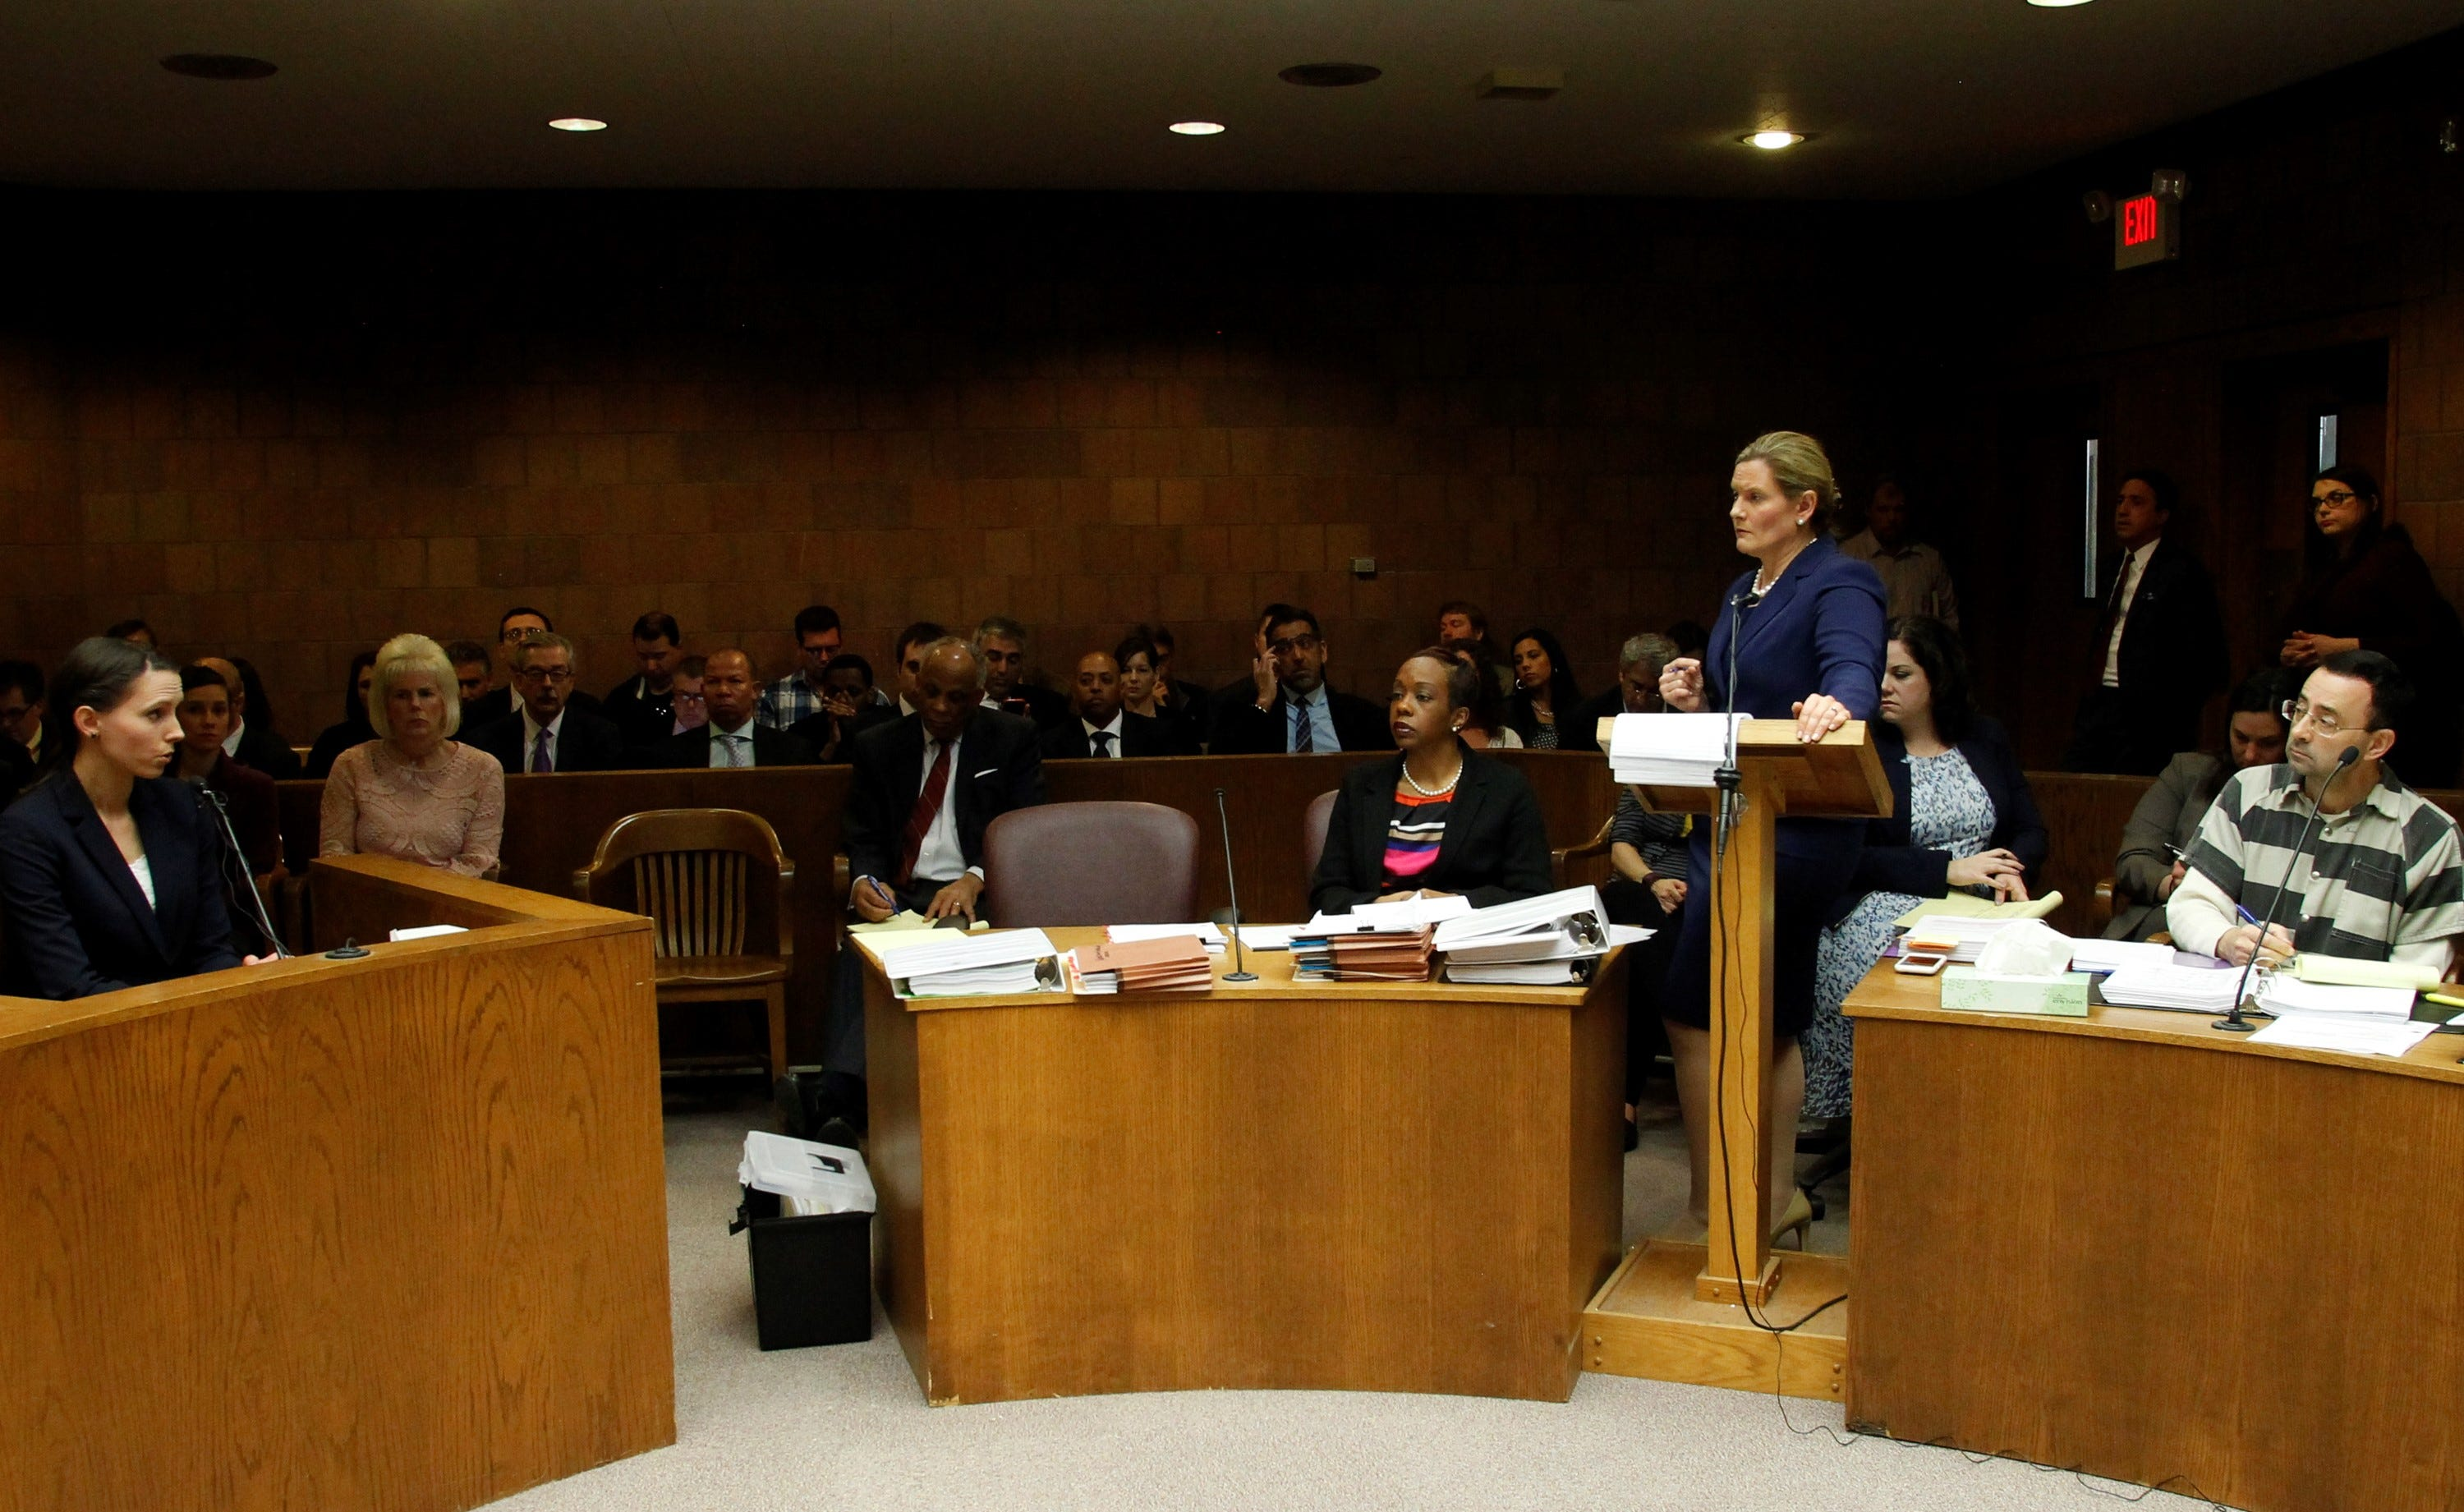 Rachael Denhollander answers questions from Assistant Attorney General Angela Povilaitis during a preliminary hearing for Larry Nassar in 55th District Court in Mason, Michigan on May 12, 2017. Nassar is seated just behind Povilaitis..